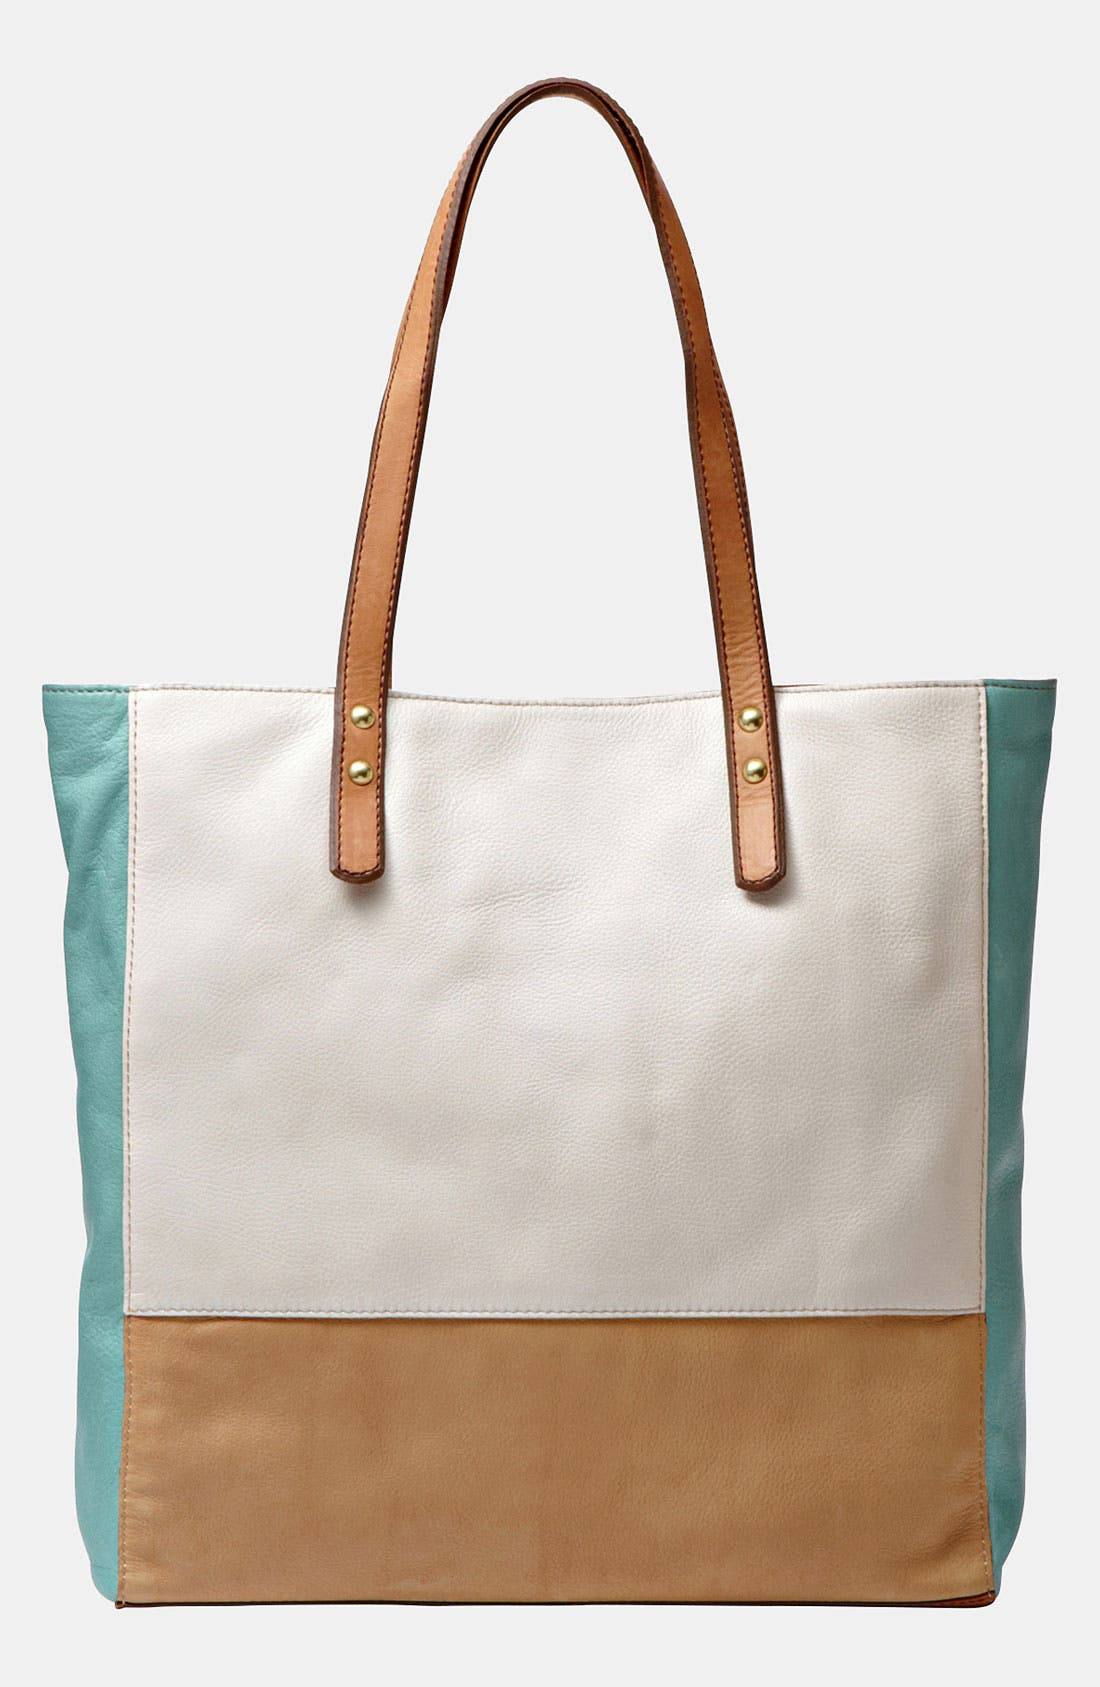 Main Image - Fossil 'Zoey' Tote